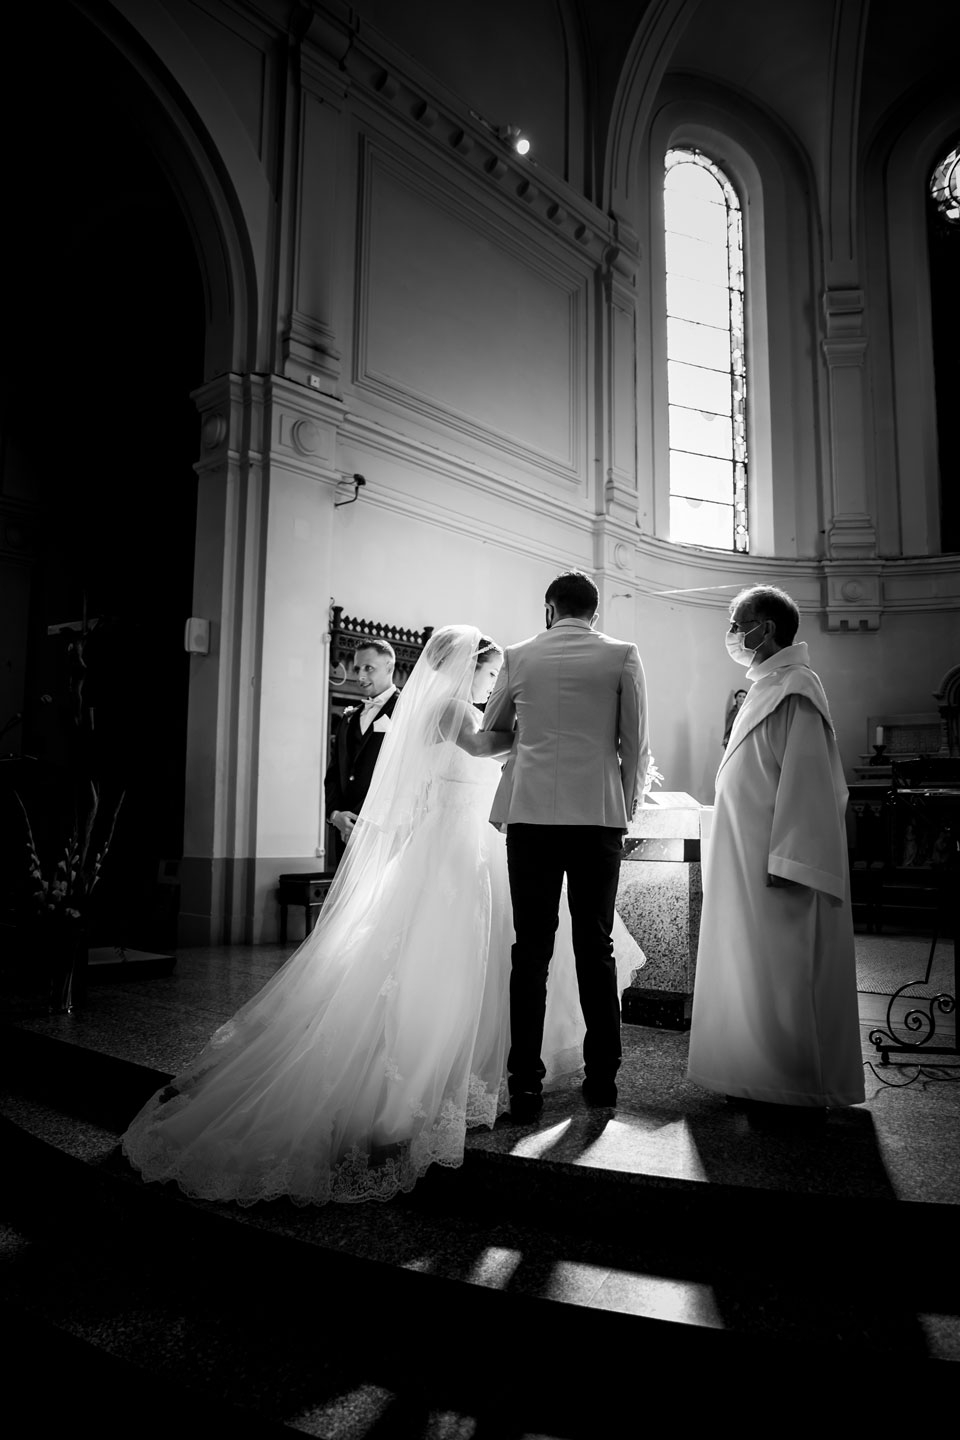 20200912-mariage-ophelie-alexandre-023